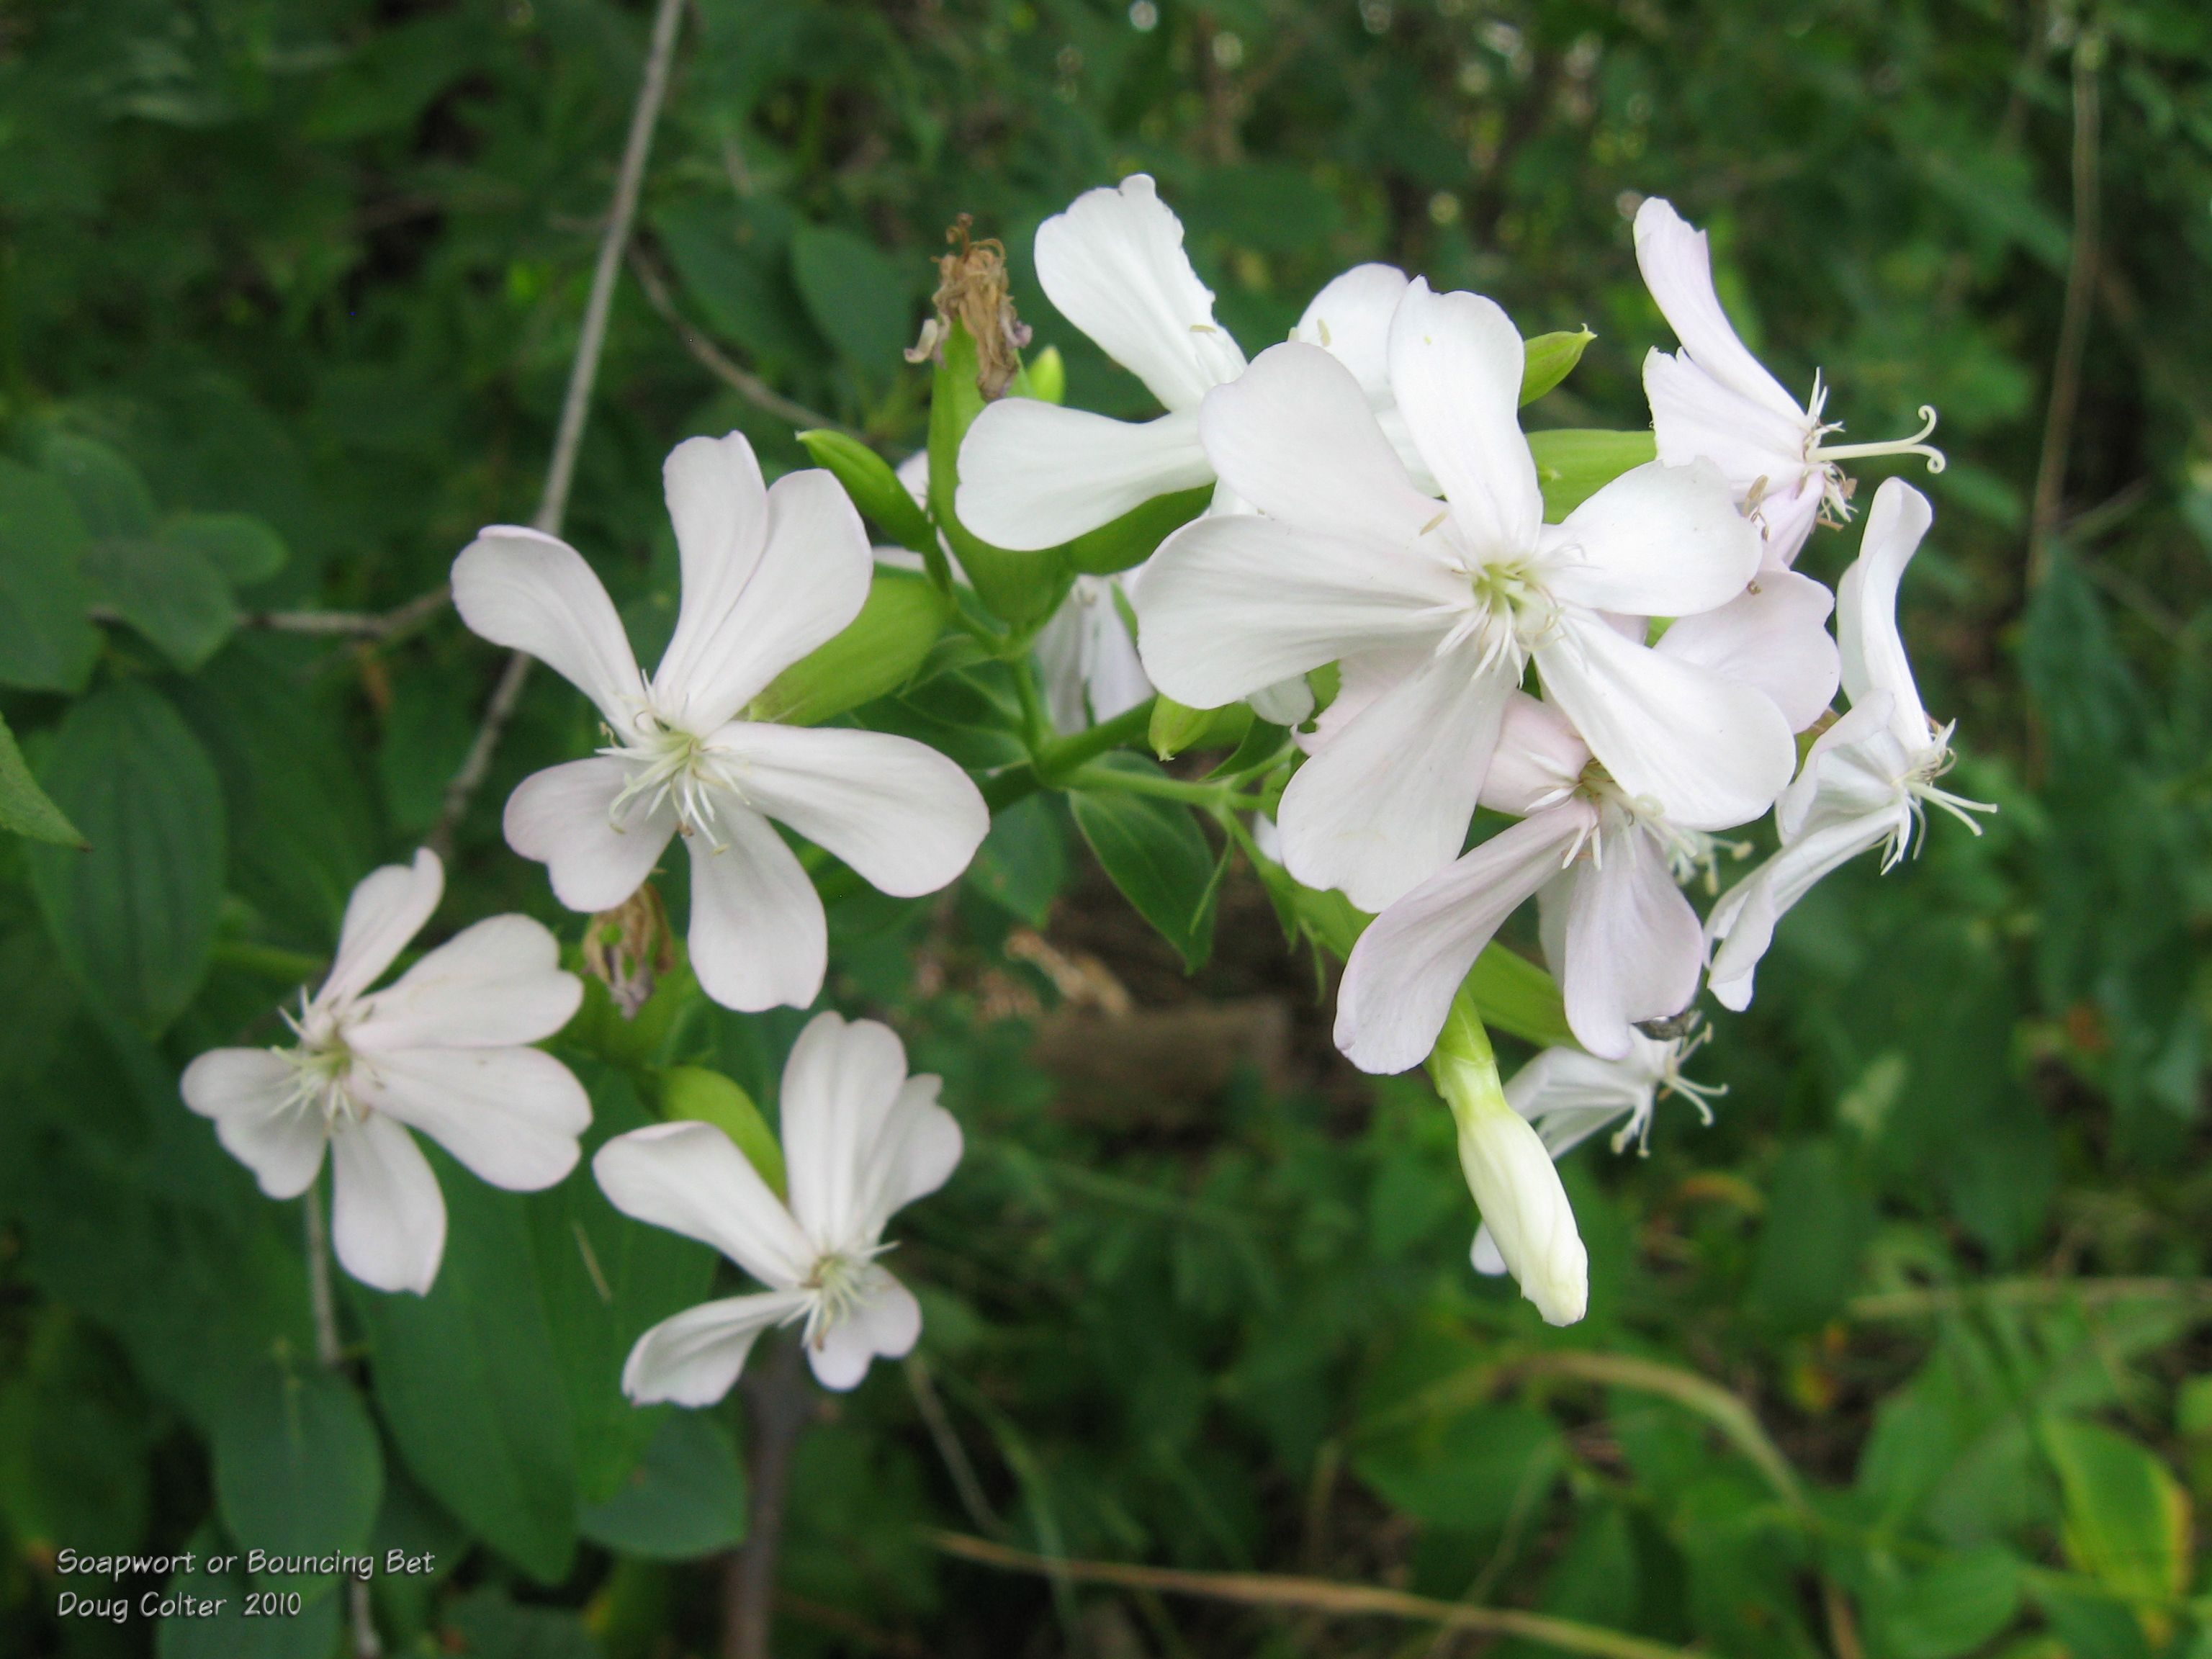 Bouncing Bet  aka soapwort (Saponaria officinalis) • Family: Pink (Caryophyllaceae)  • Habitat: roadsides, waste places • Height: 1 to 2-1/2 feet • Flower size: 1 inch across • Flower color: pink, sometimes very pale pink • Flowering time: July to September  • Photo by Doug Colter